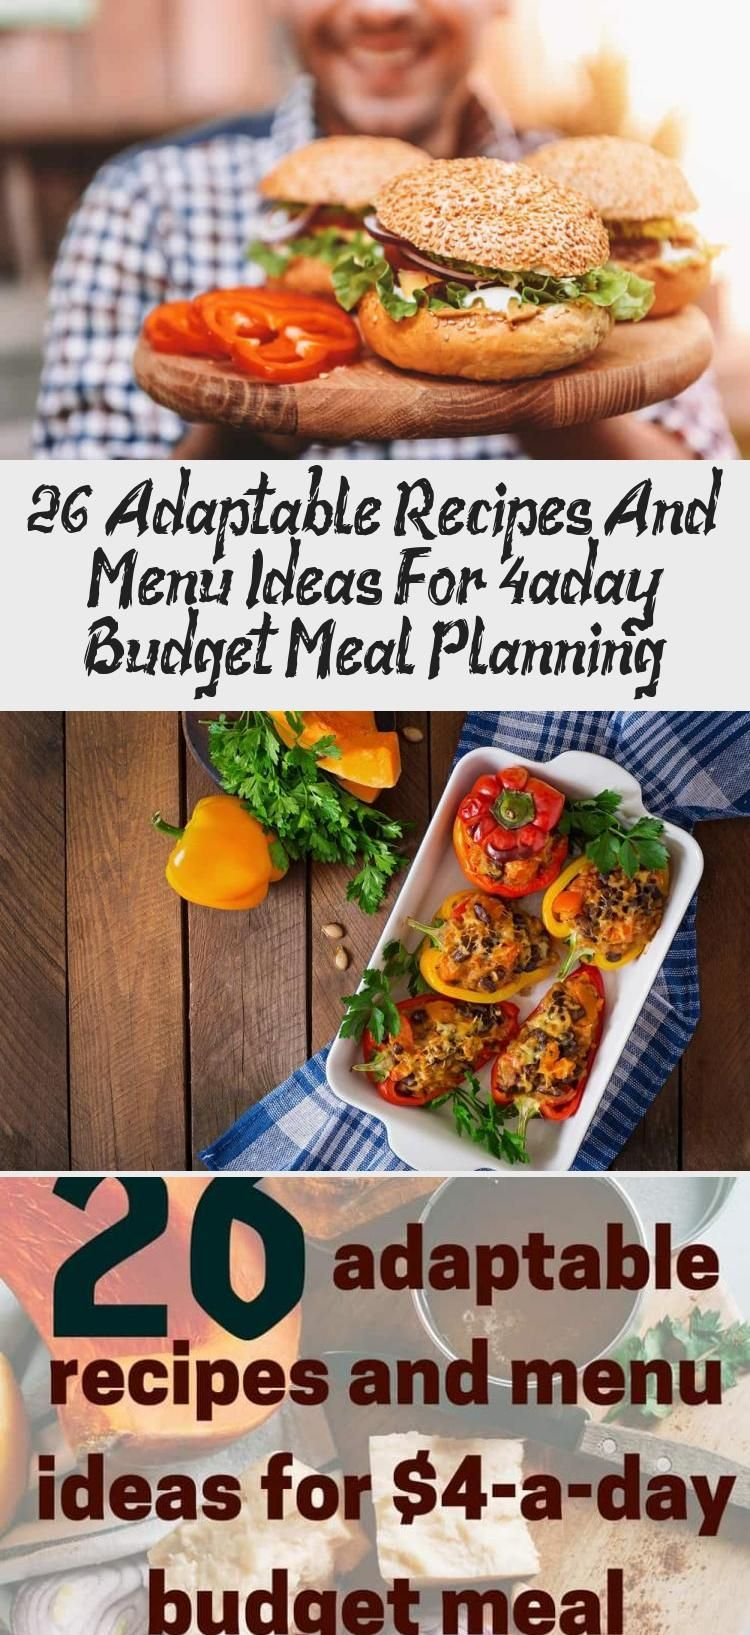 26 Adaptable Recipes And Menu Ideas For 4aday Budget Meal Planning  Pinokyo  26 adaptable recipes and menu ideas for 4aday budget meal planning  Living On The Cheap